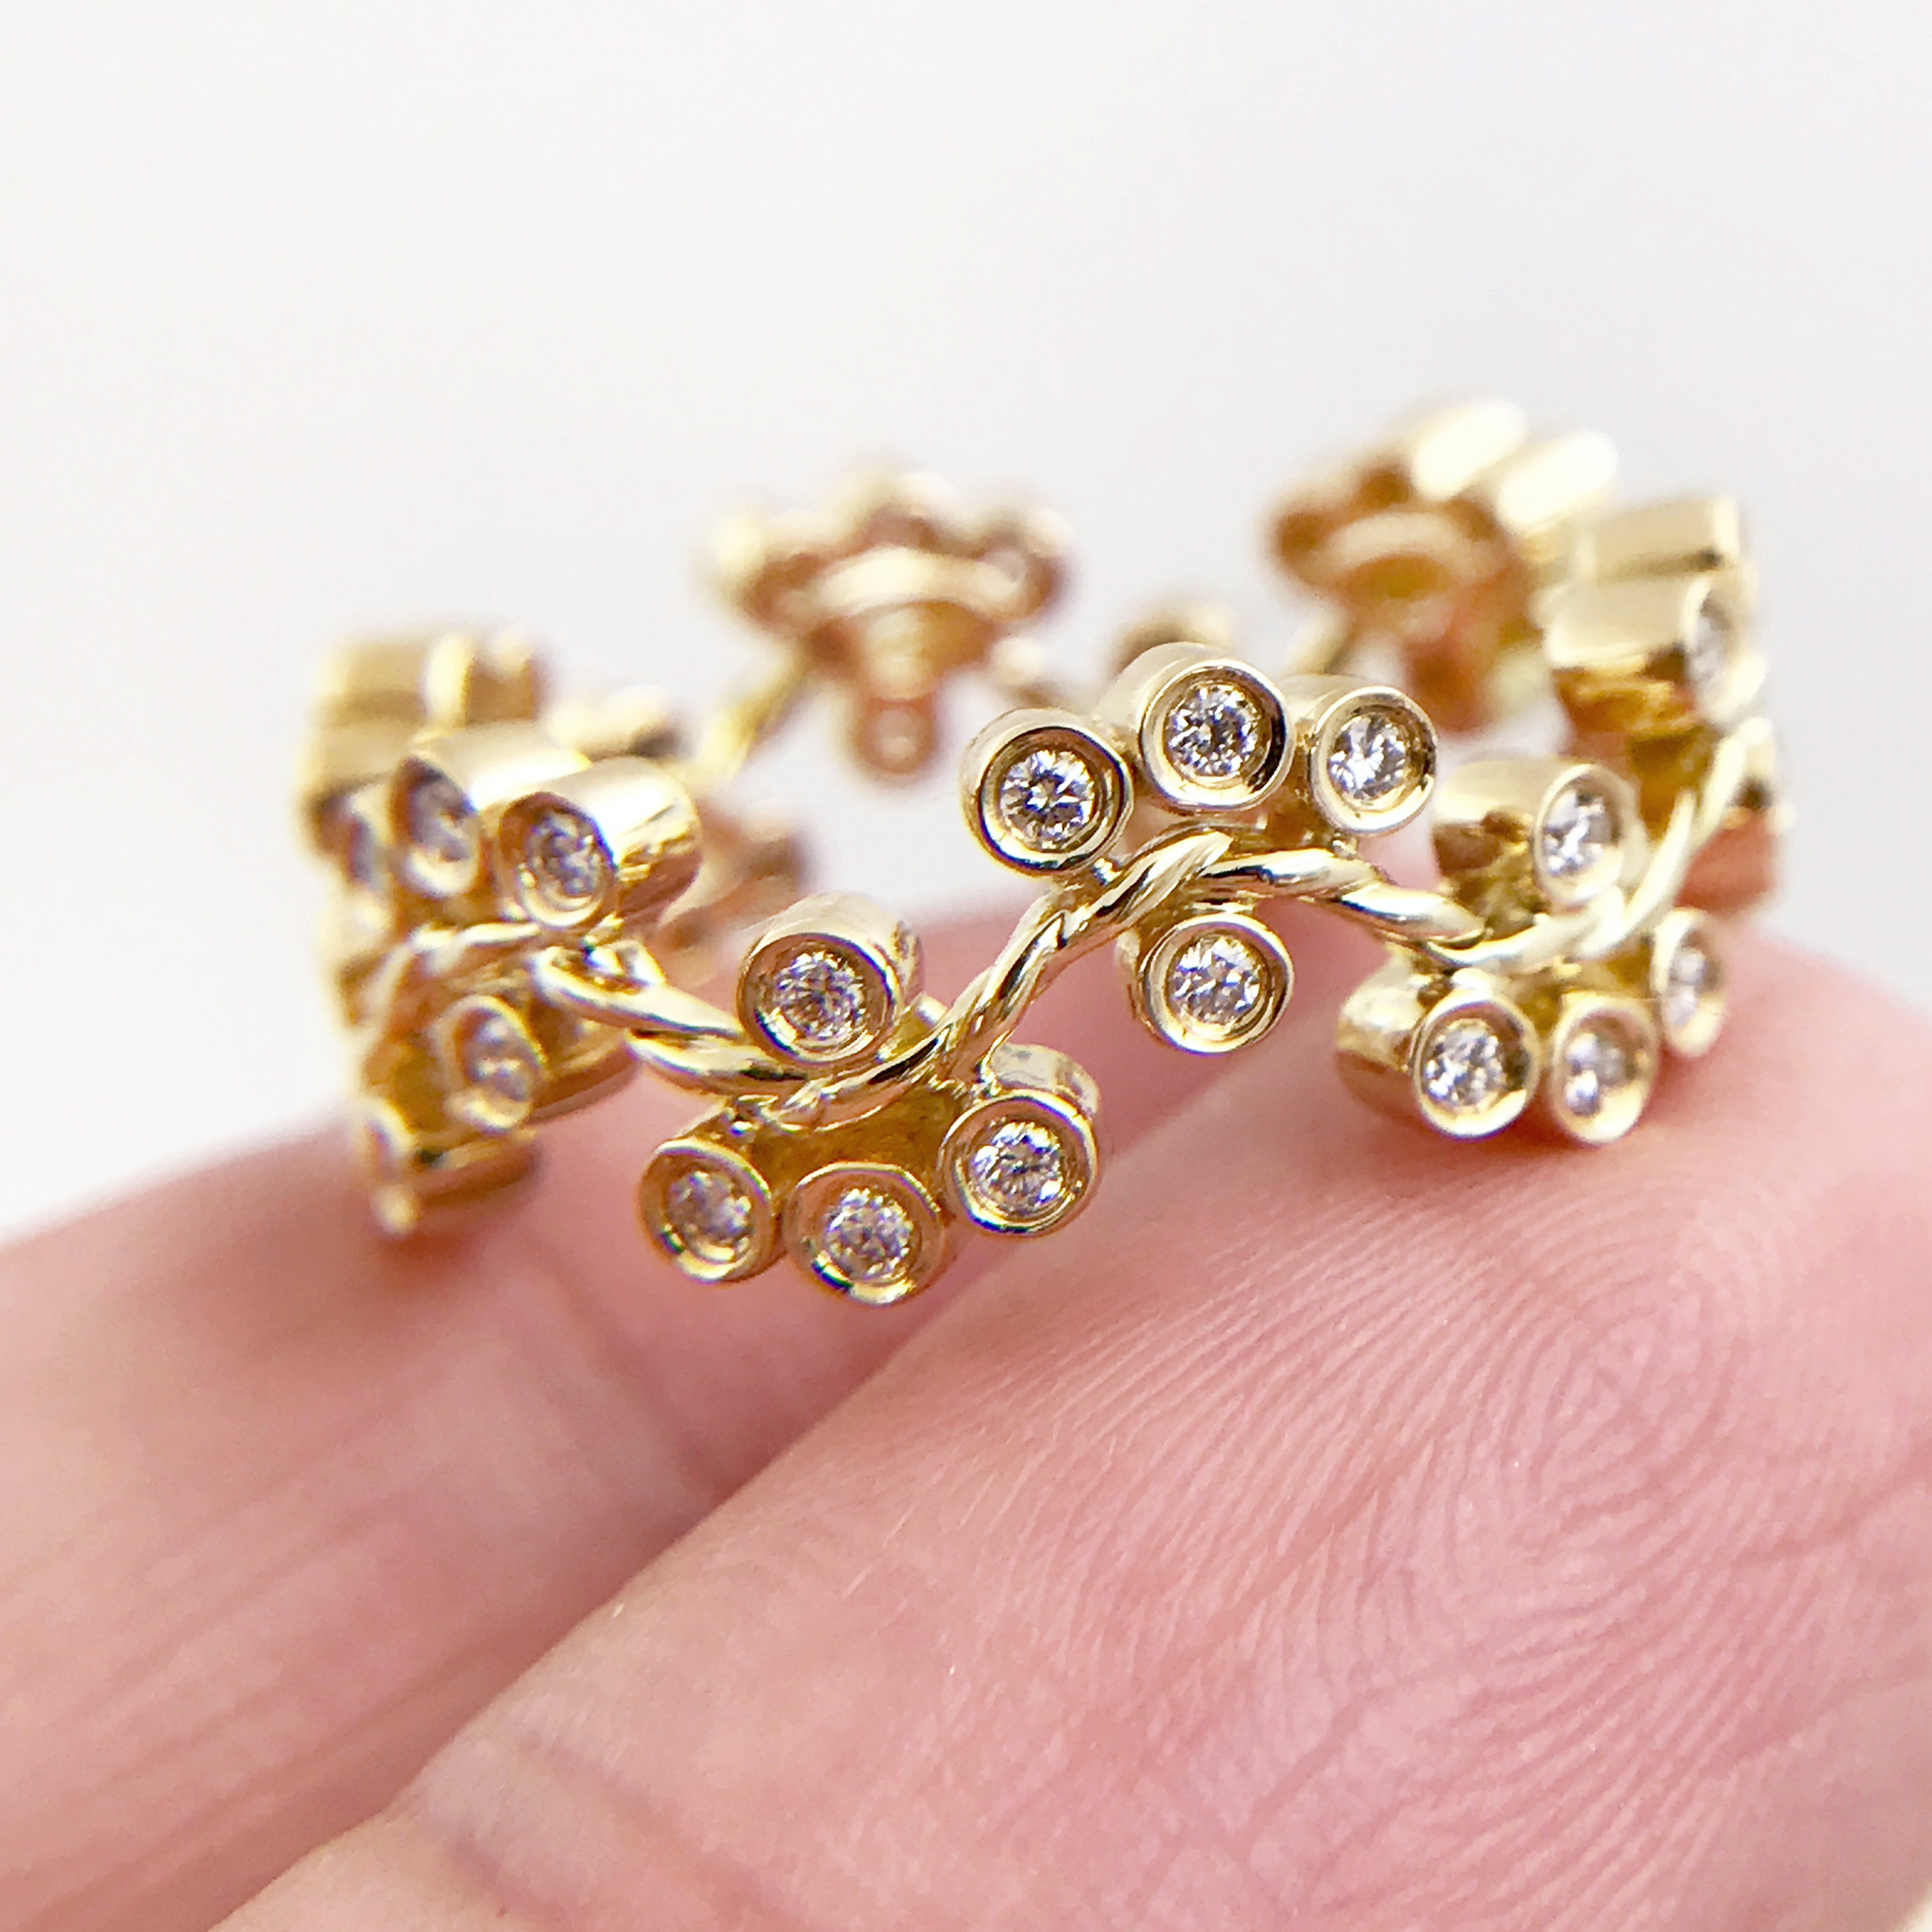 31-7mm JeweLyrie Signature Wavy Twist Alternate Diamond Cluster Gold Ring Stackable in 14k and 18k from Glissade stacking band by JeweLyrie._3289